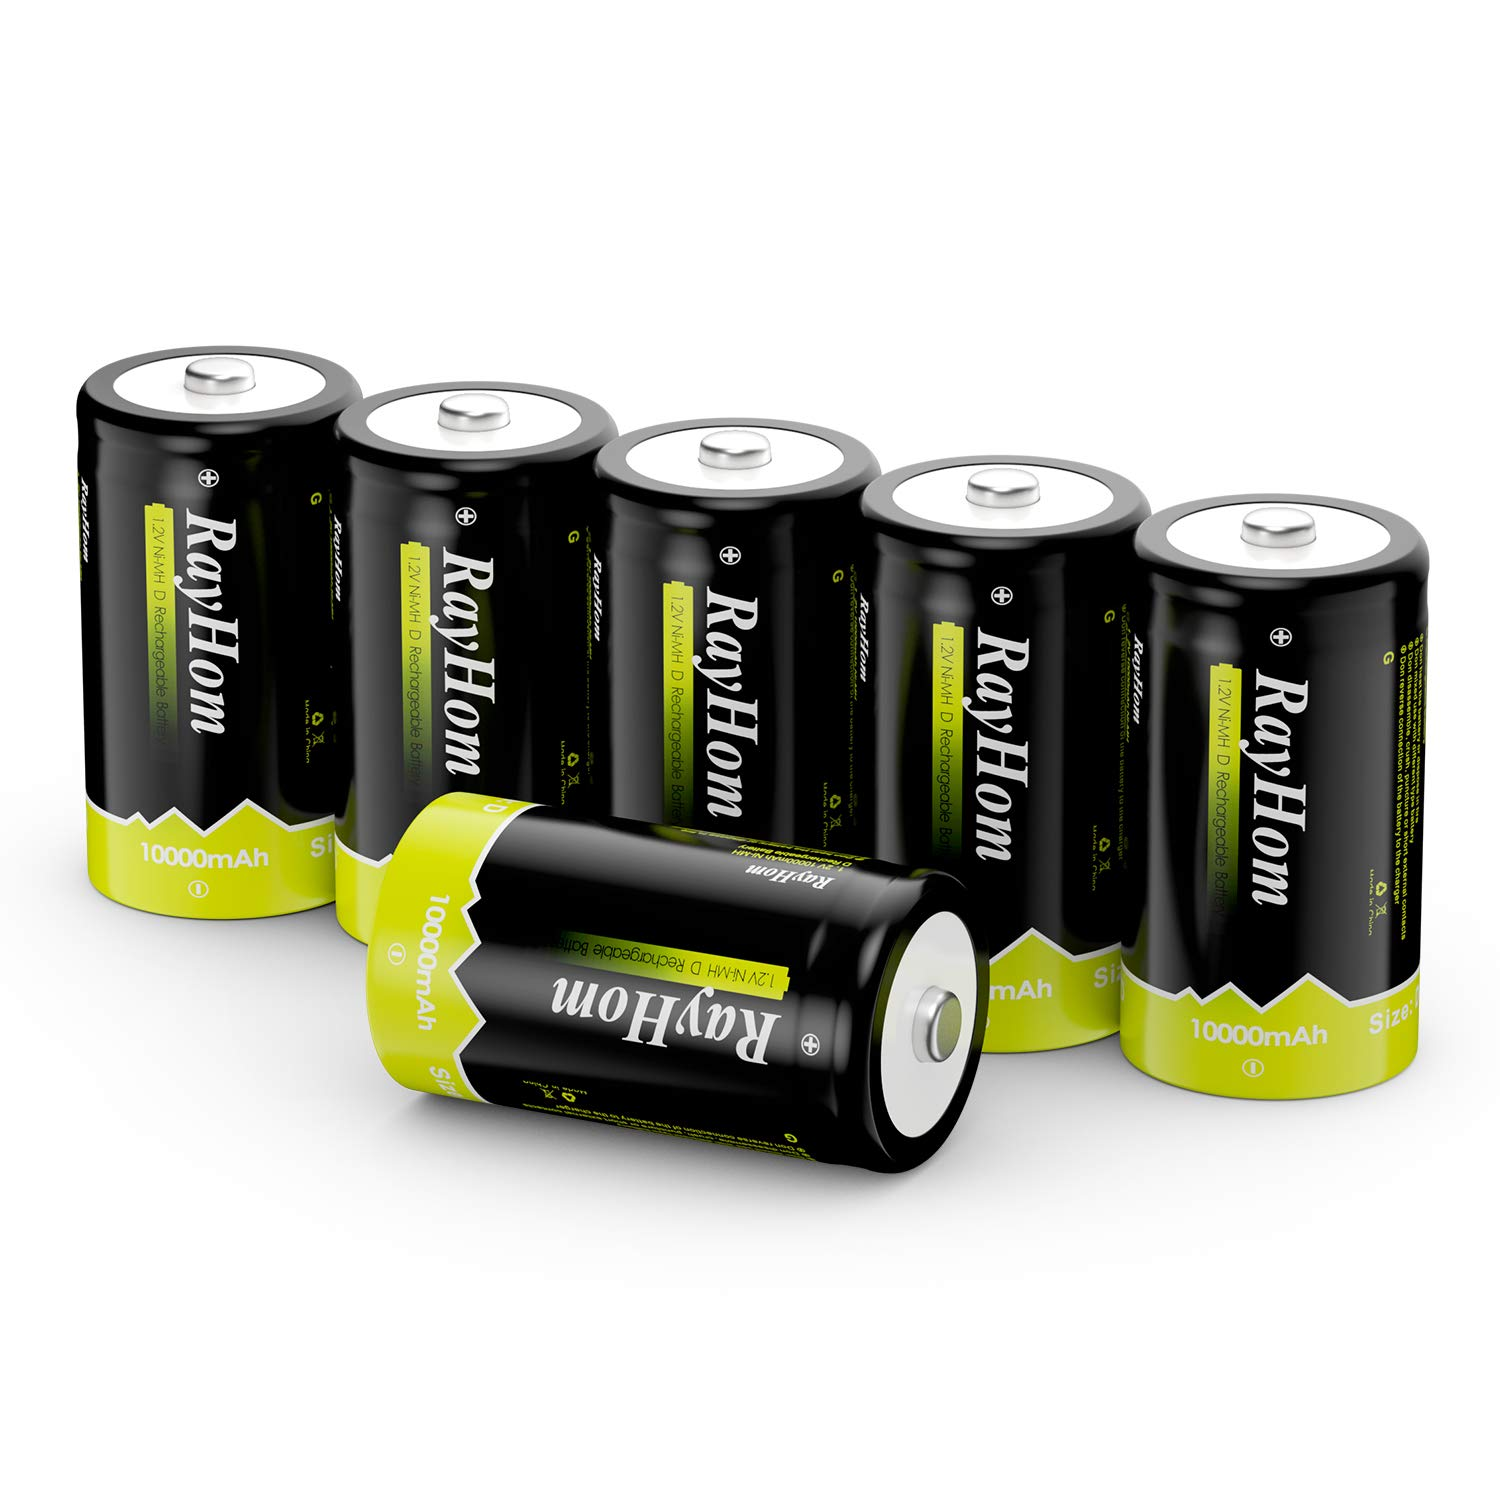 RayHom Rechargeable D Batteries 6Pack - 1.2V 10,000mAh Ni-MH High Capacity High Rate D Cell Size Battery with Box (6 Pack)